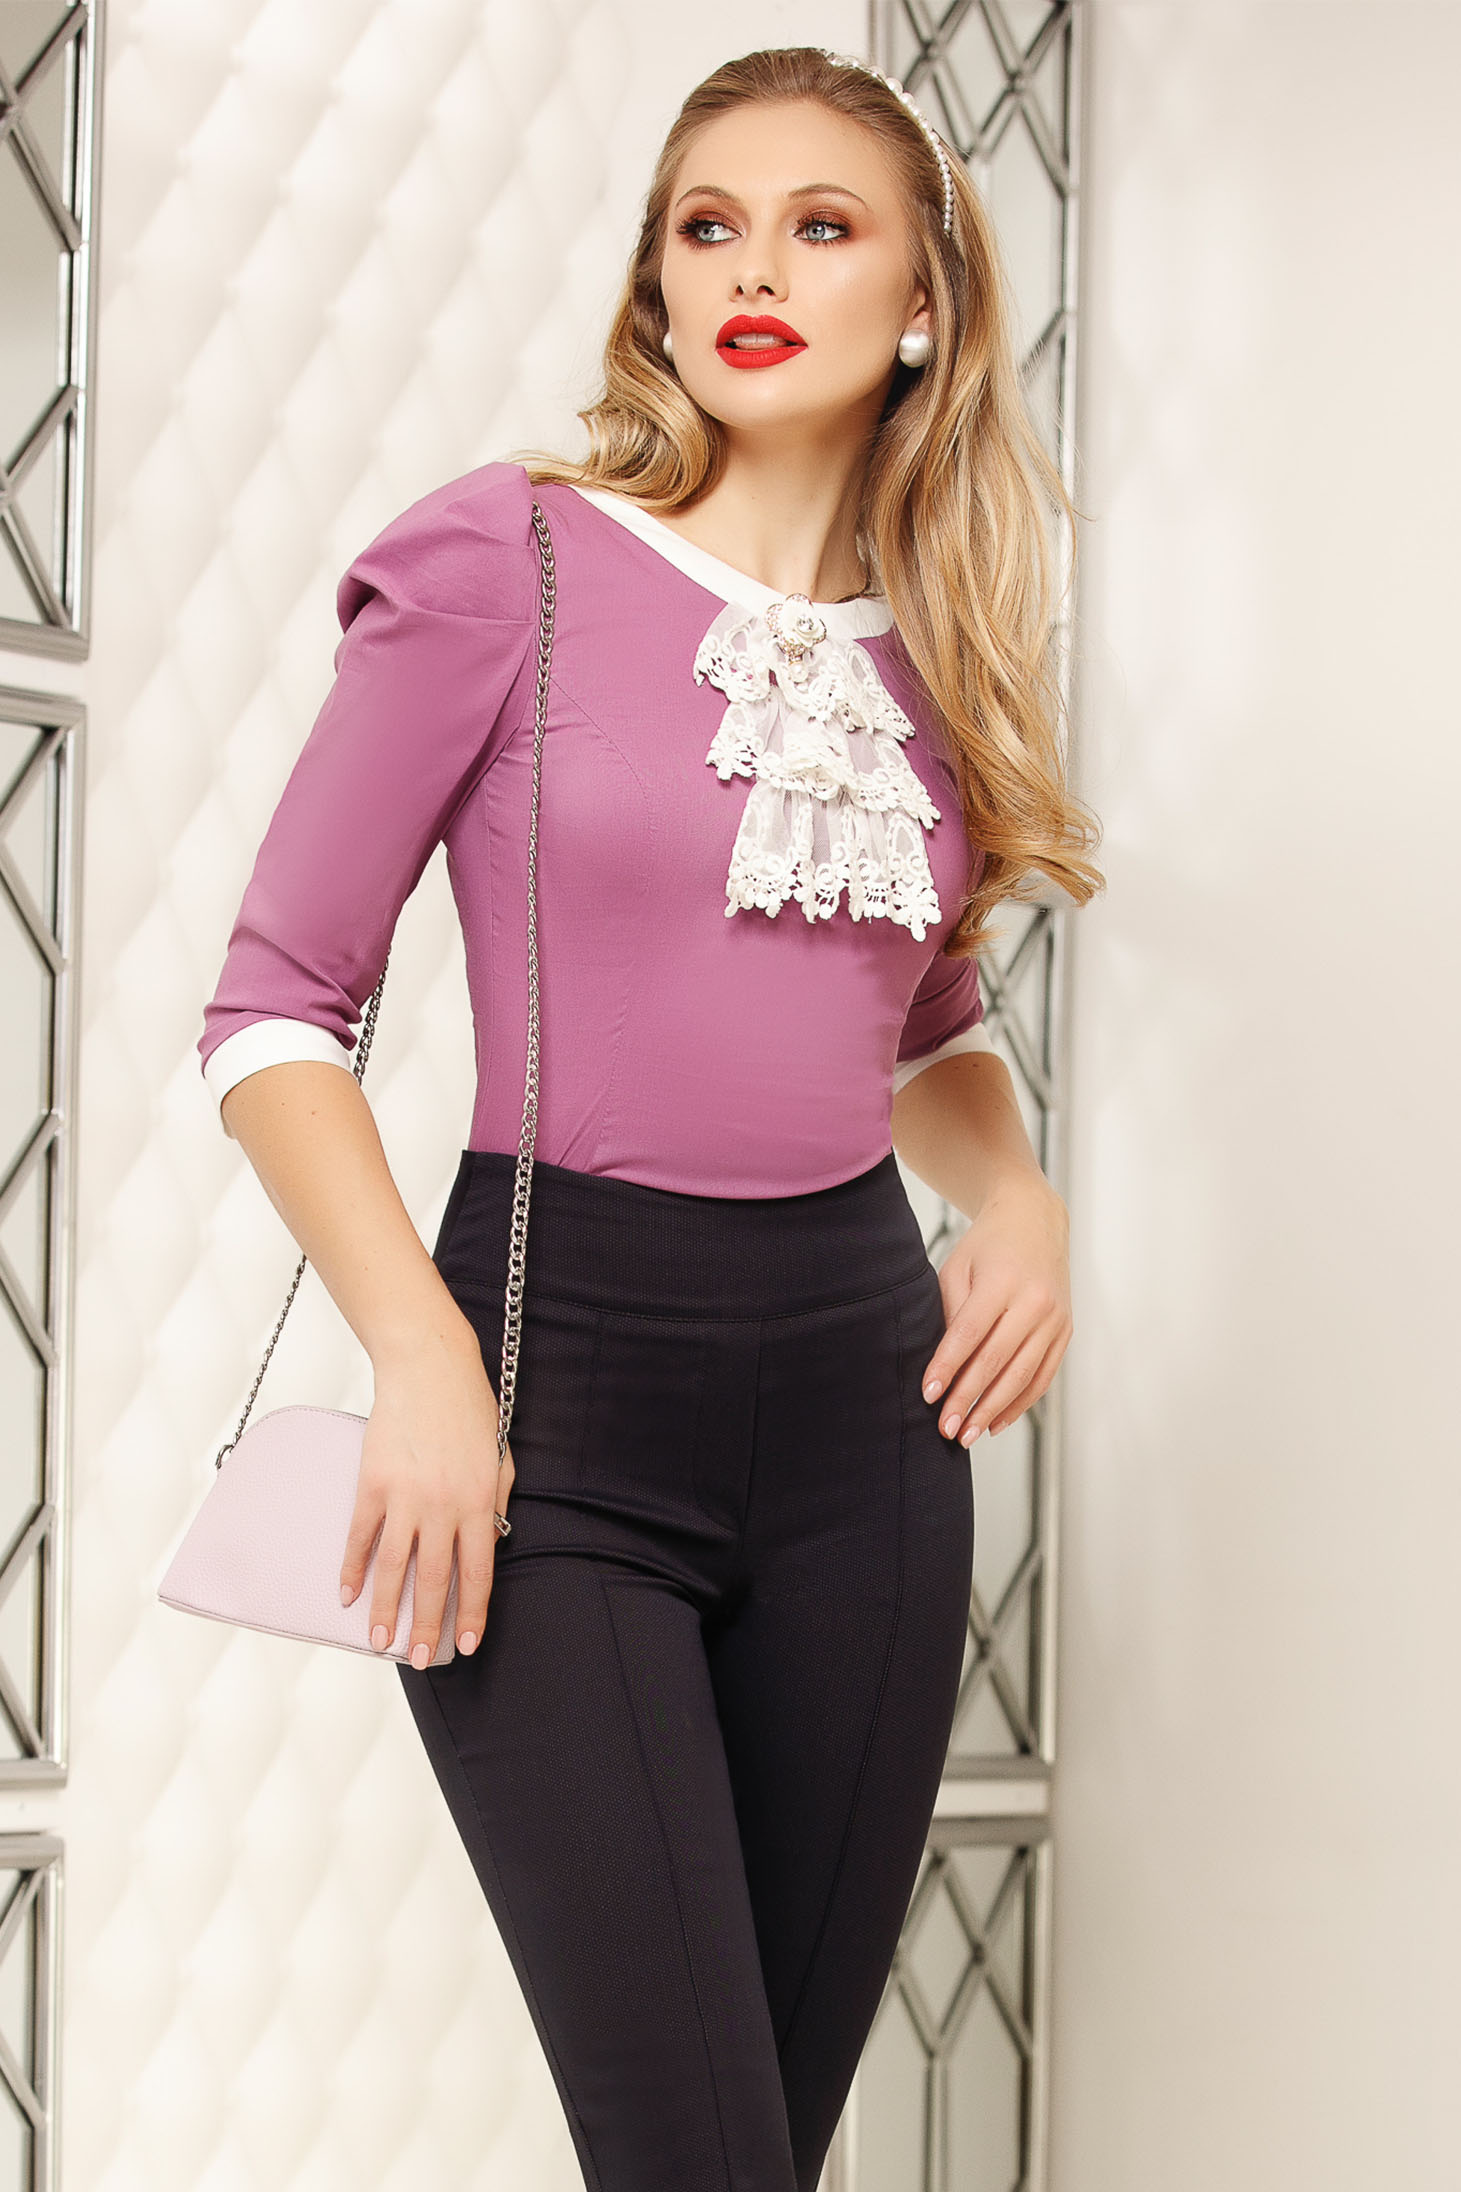 Lightpurple women`s shirt office accessorized with breastpin high shoulders tented short cut cotton